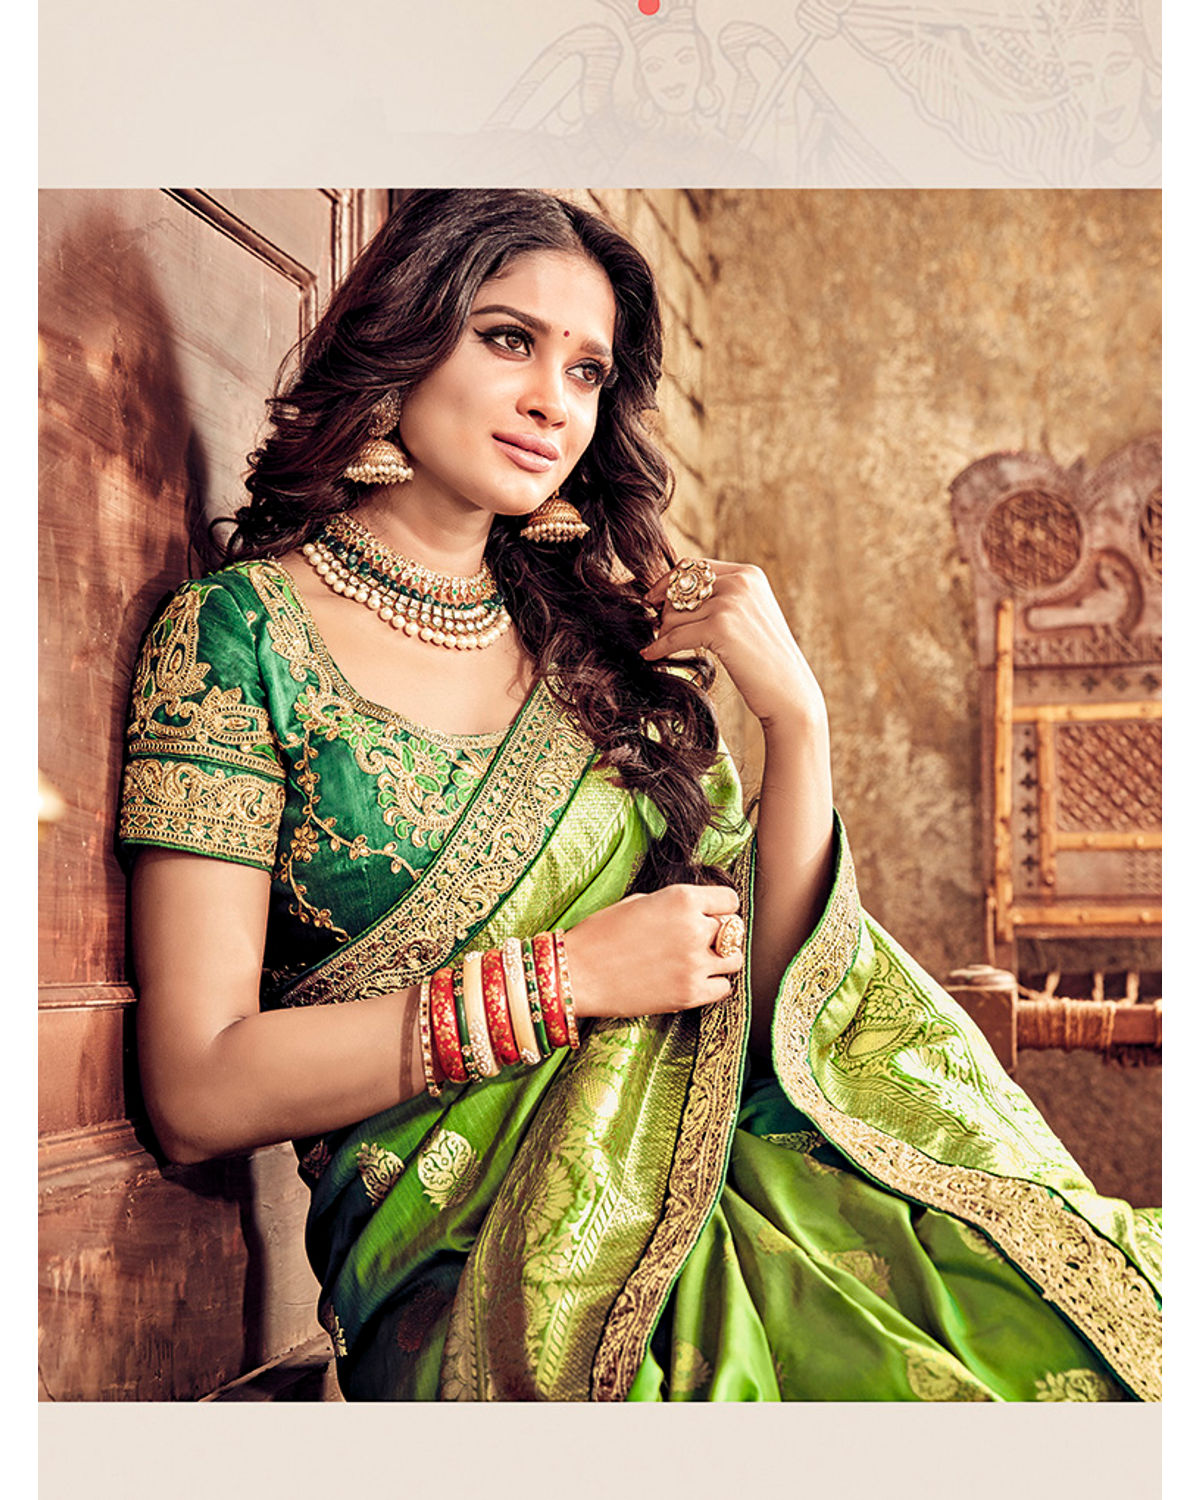 d83e4ac075 ... Banarasi Silk Wedding saree with Meenakari weave in Green Color ...